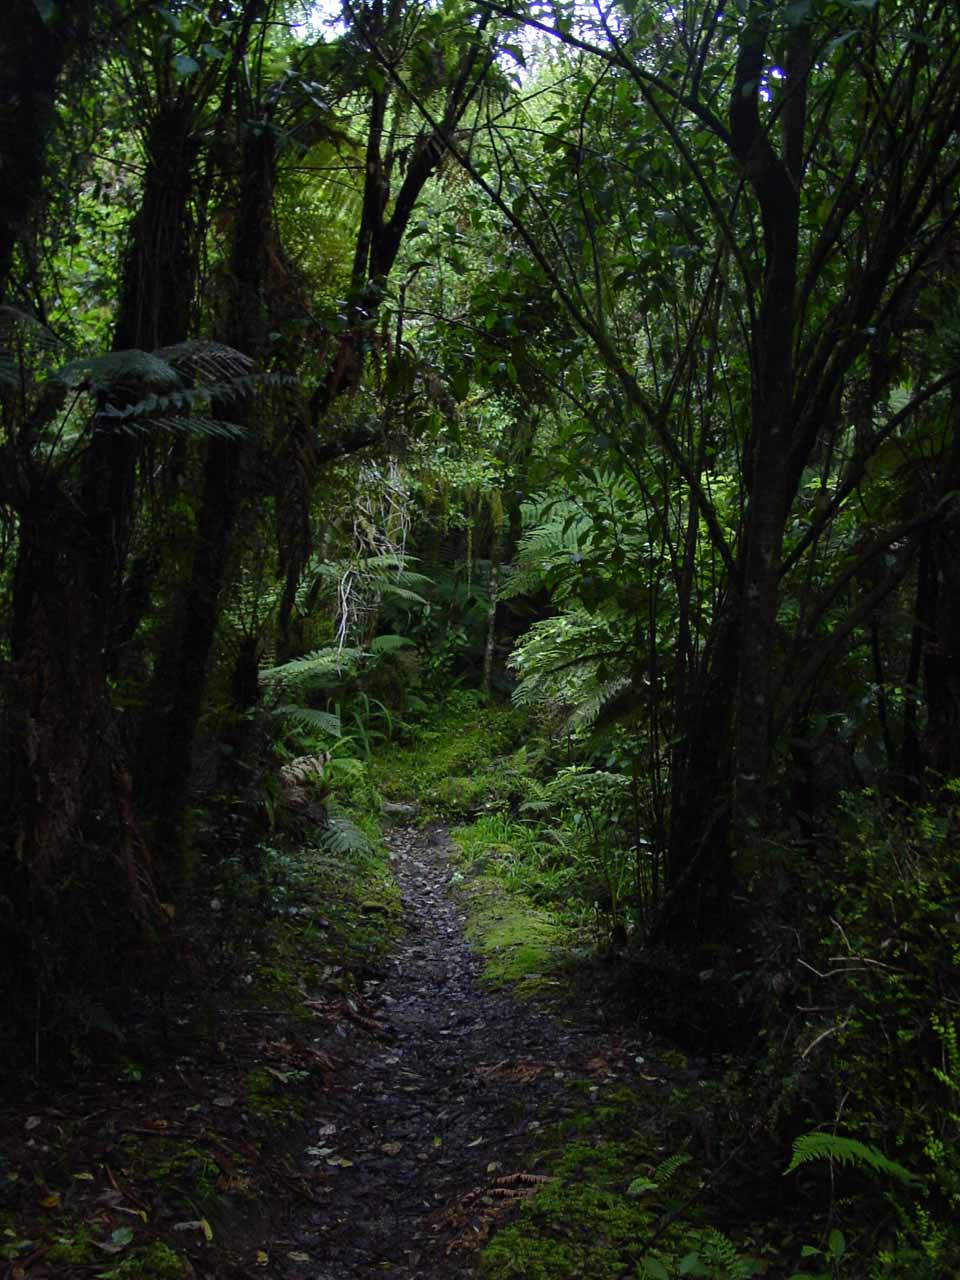 Going through the bush track to get to Carew Creek Falls